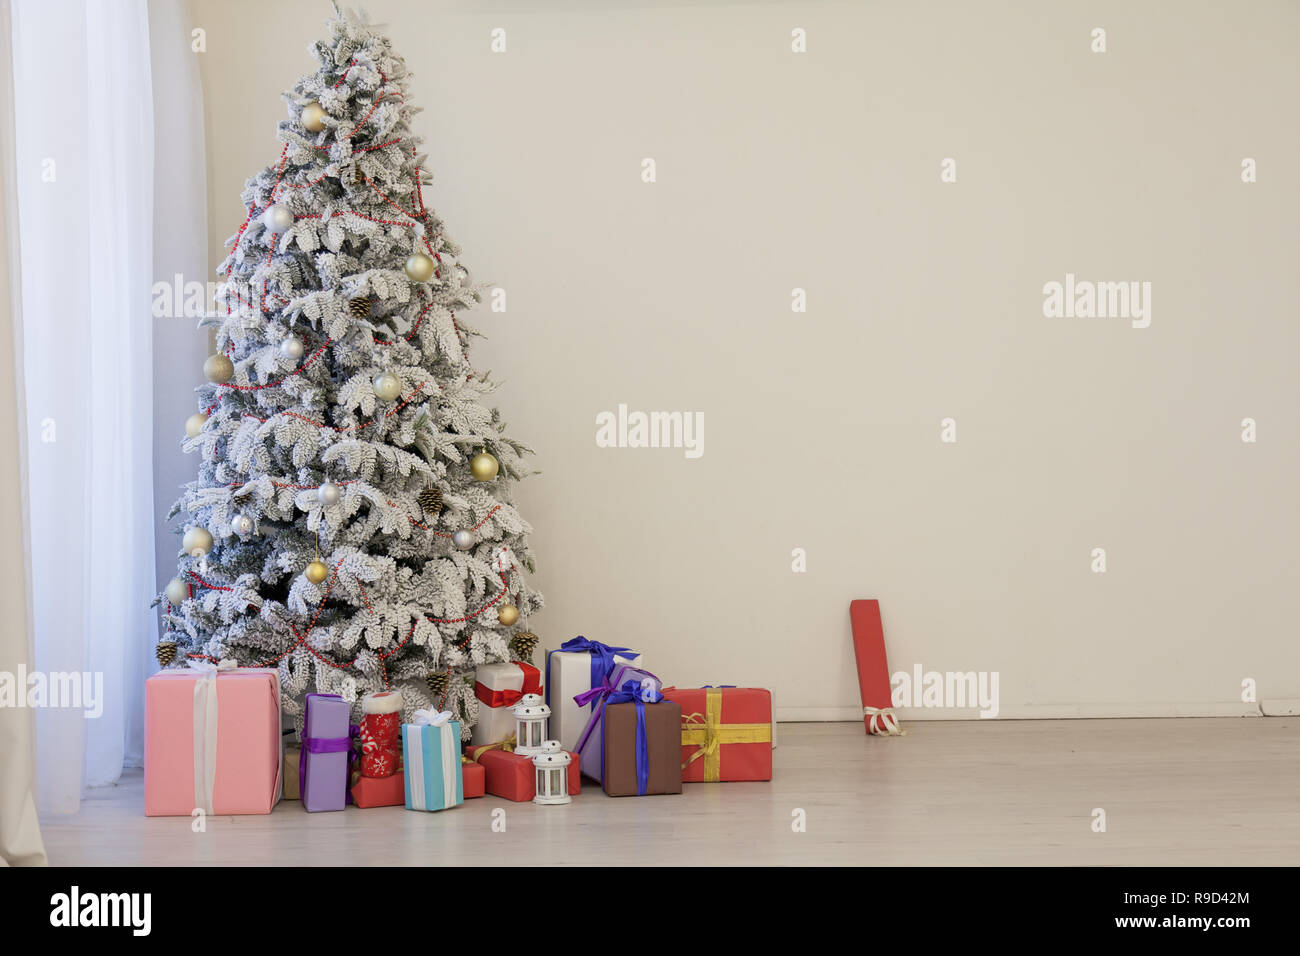 Christmas Tree Garland Lights New Year Gifts Holiday White House